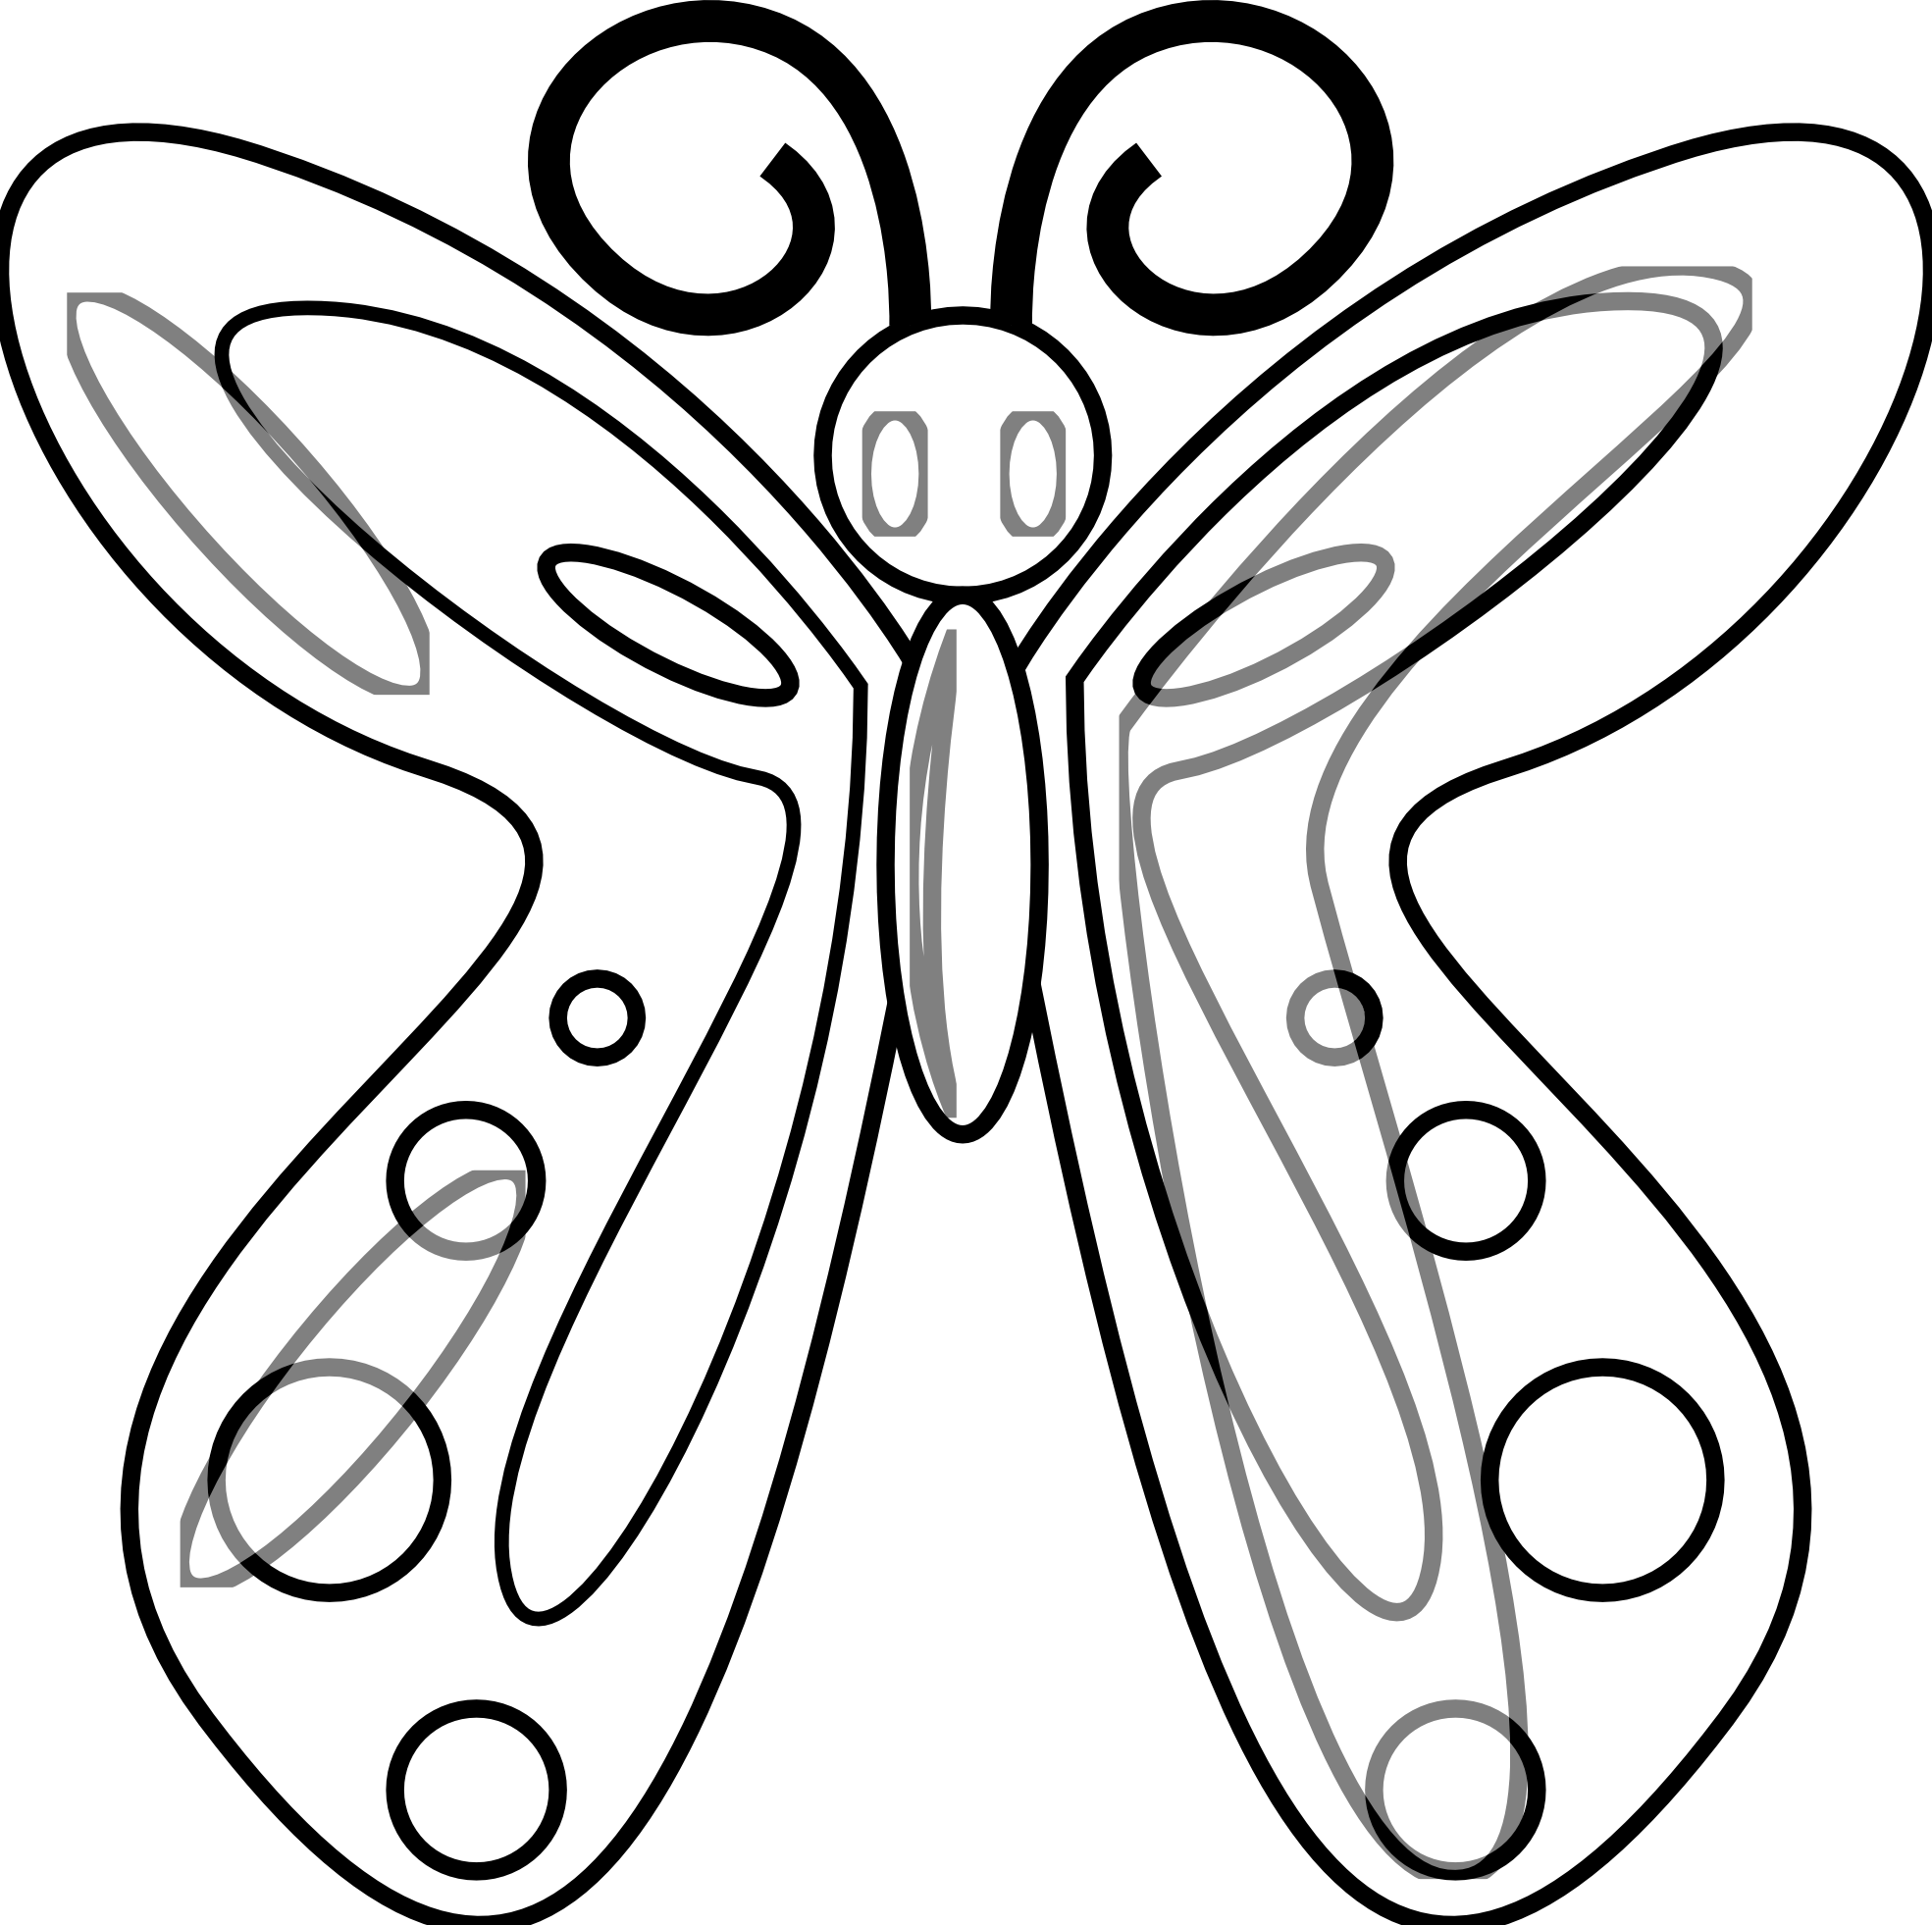 1969x1962 Butterfly Black And White Butterfly Clip Art Black And White Free